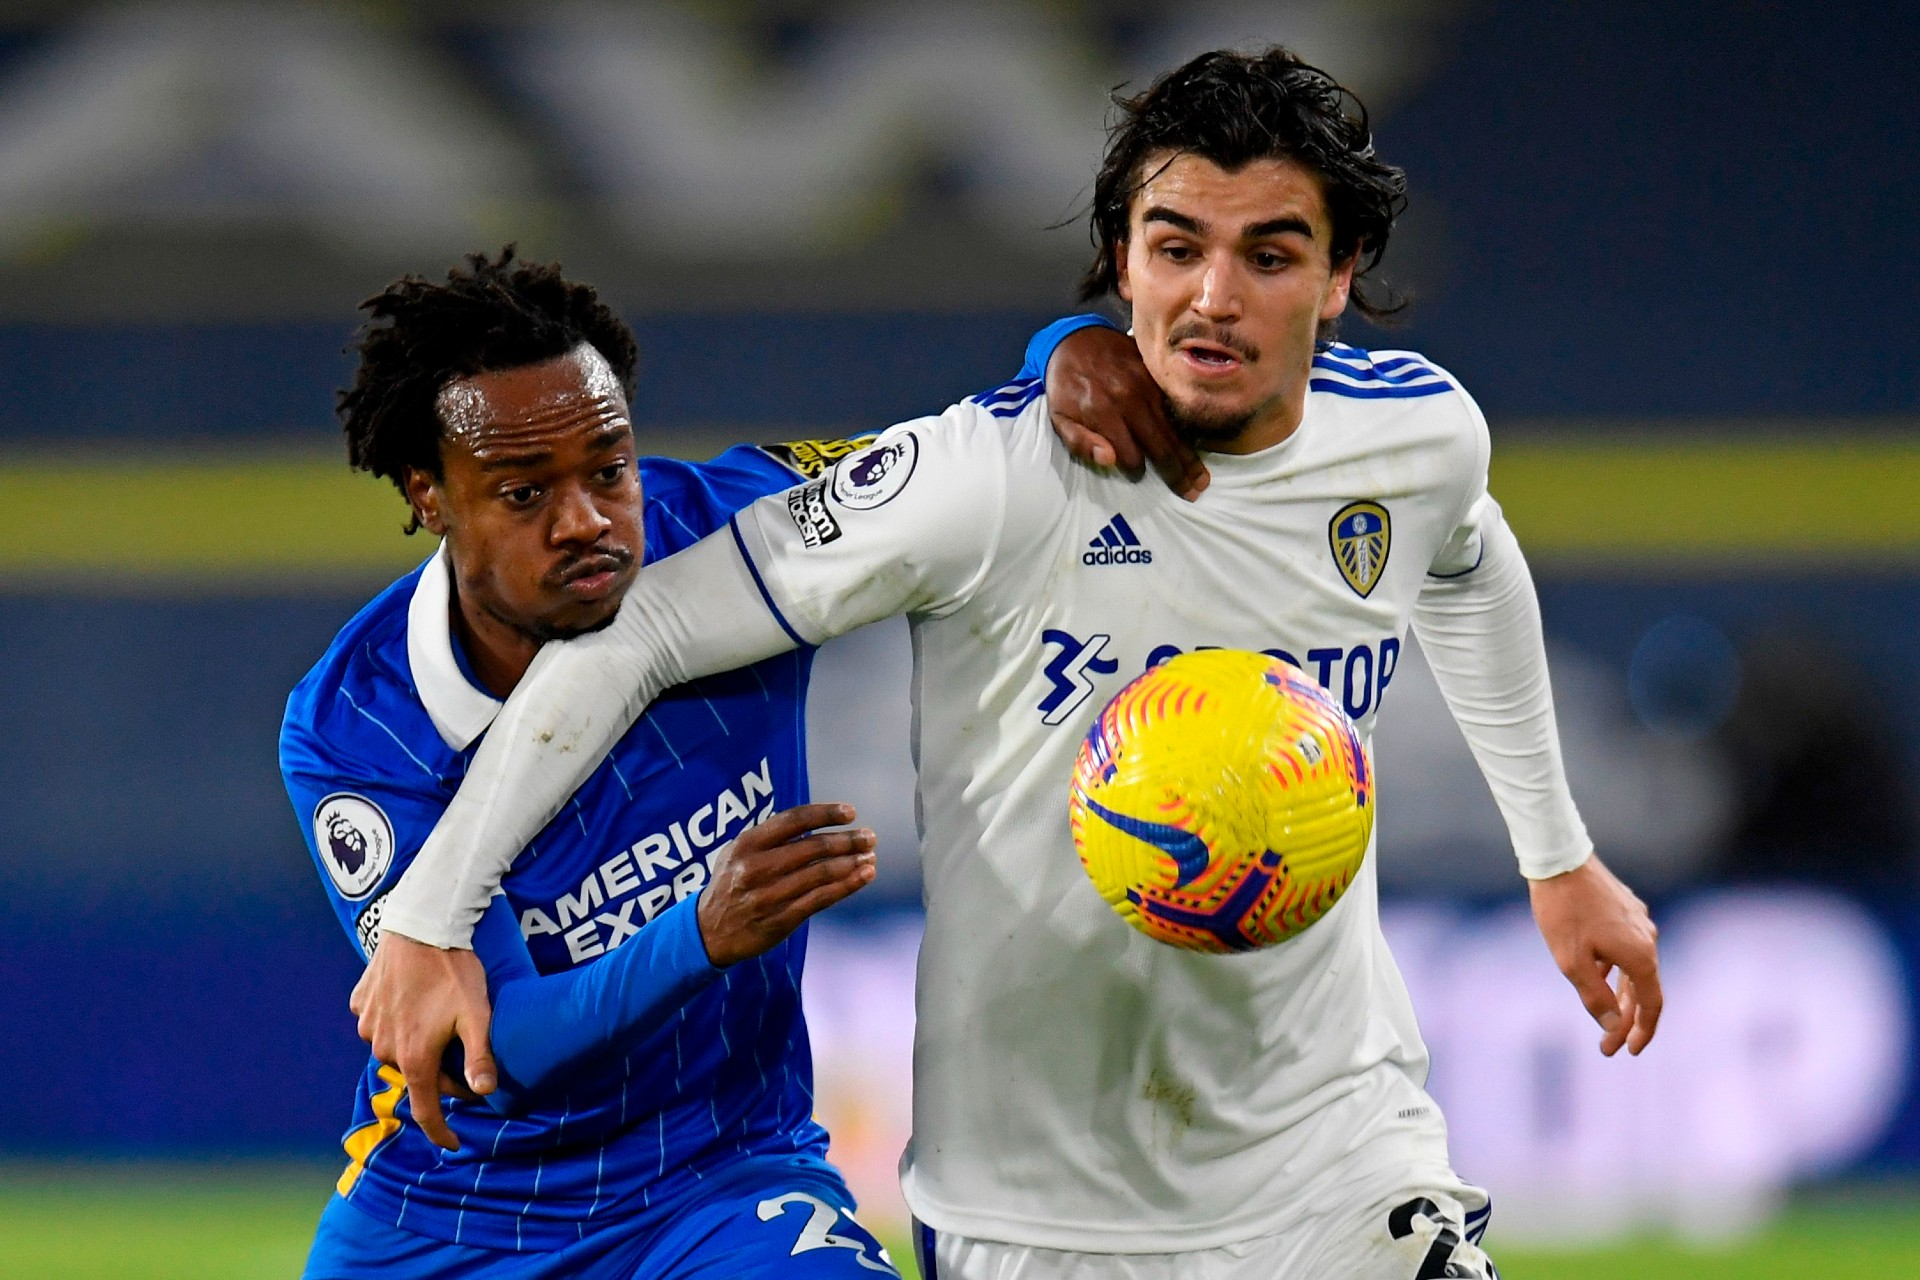 Tau helps Brighton & Hove Albion end nine-game Premier League winless streak